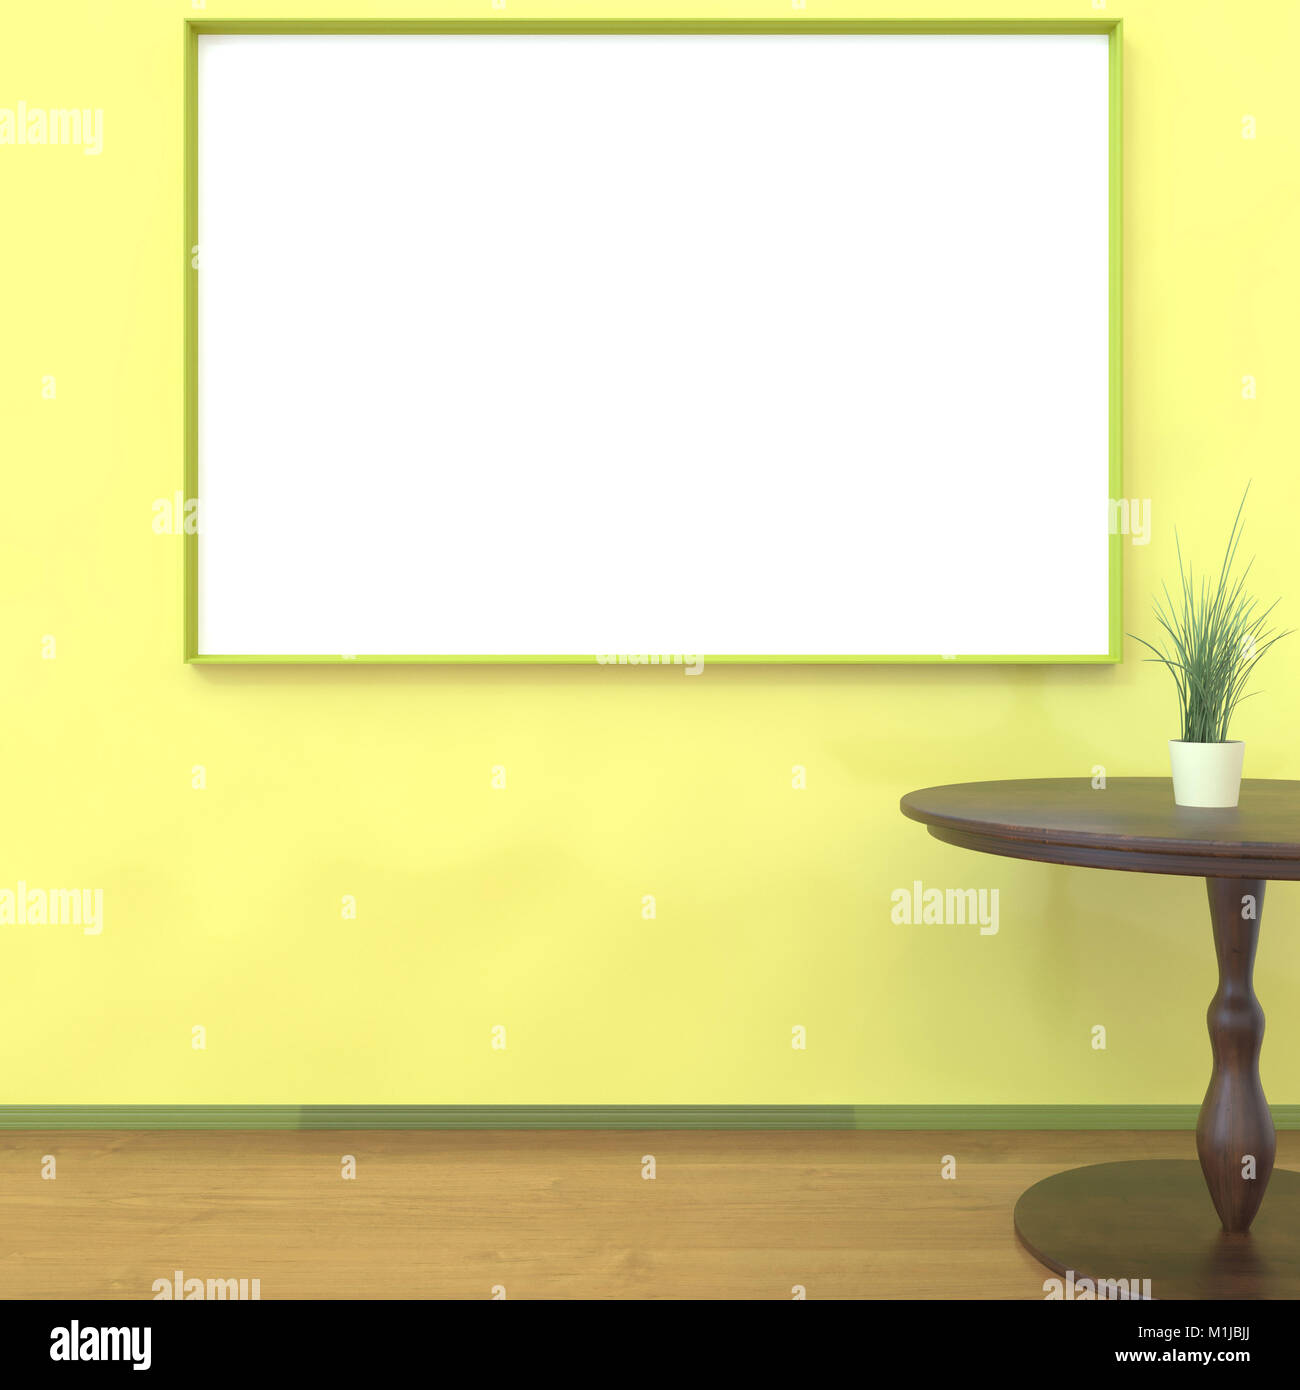 Mock up room, white poster on yellow wall 3D rendering - Stock Image